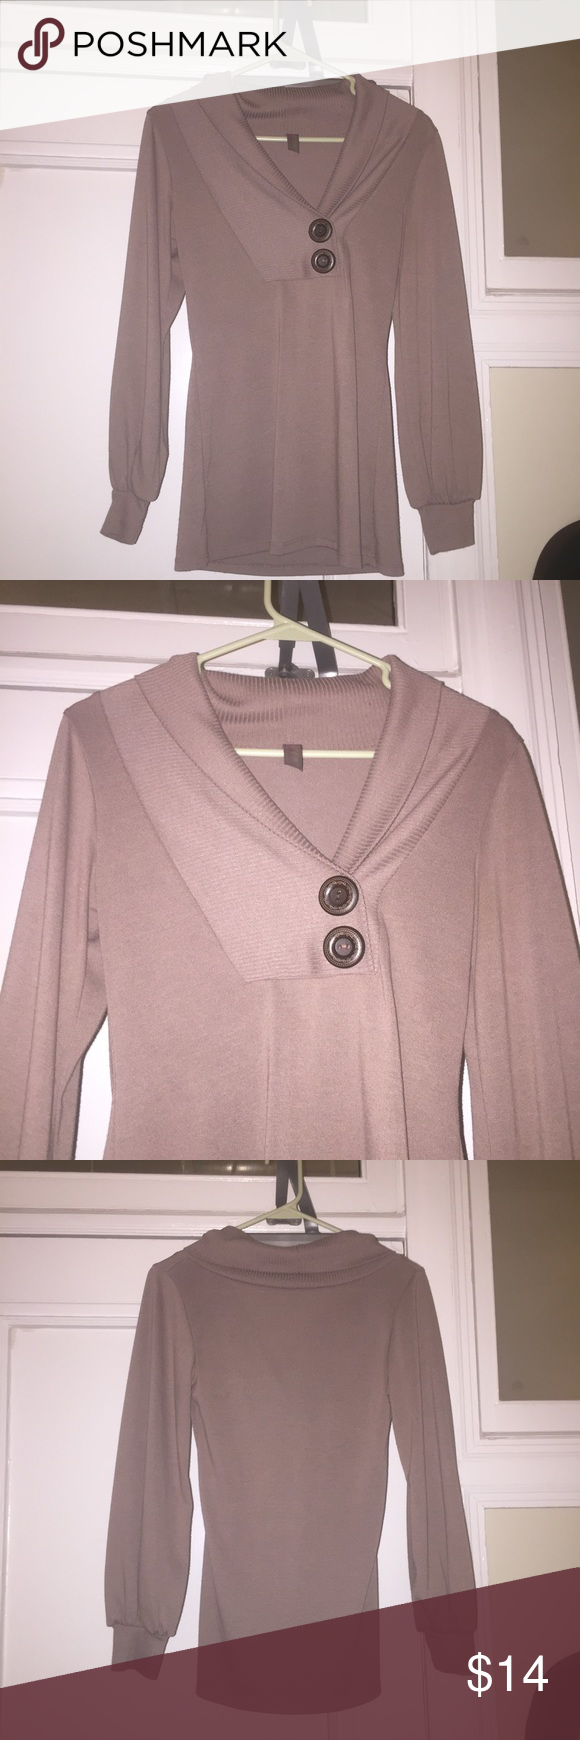 Cute Francesca's Sweater | Conditioning, Brown and Customer support